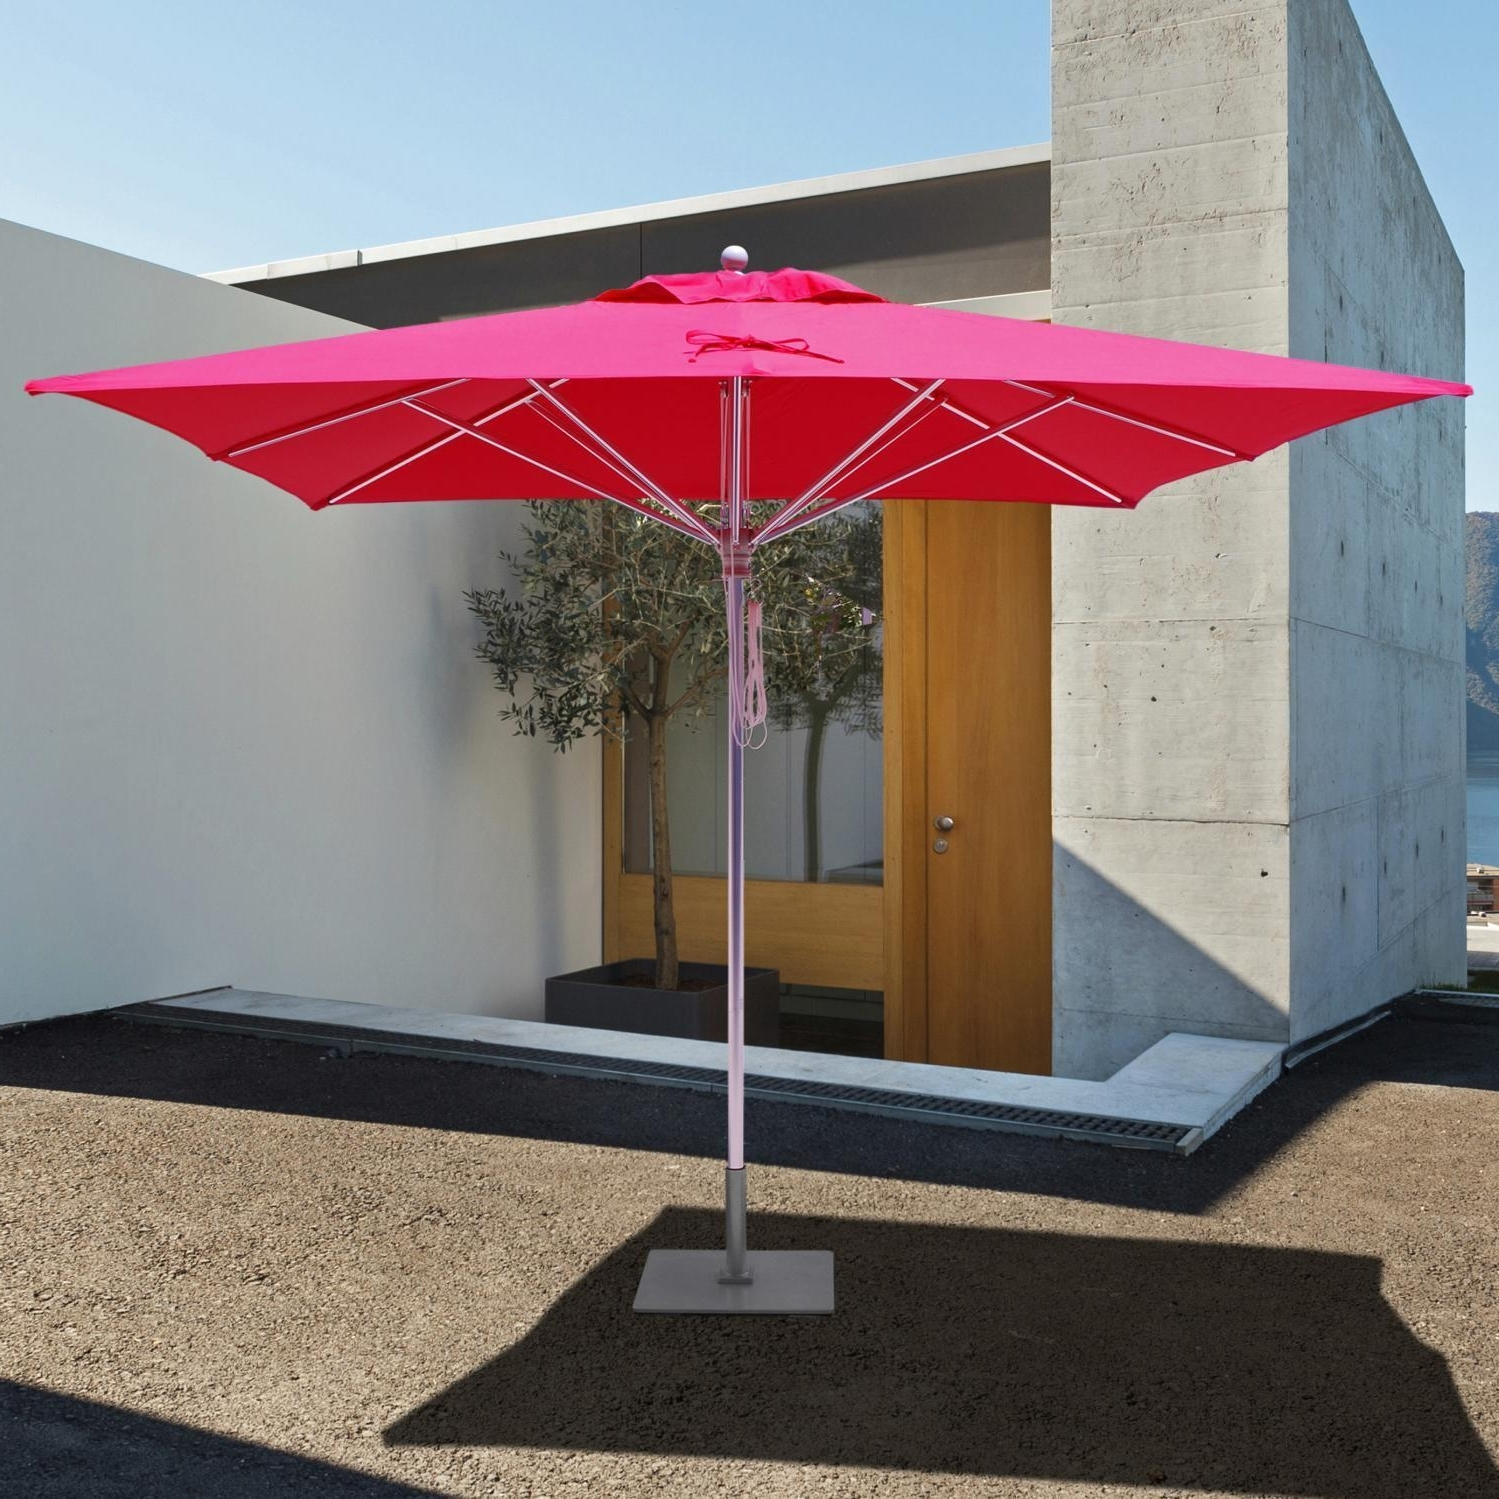 Galtech Sr Series 10 Ft Square Aluminum Commercial Patio Umbrella For Most Popular 10 Ft Patio Umbrellas (View 11 of 20)